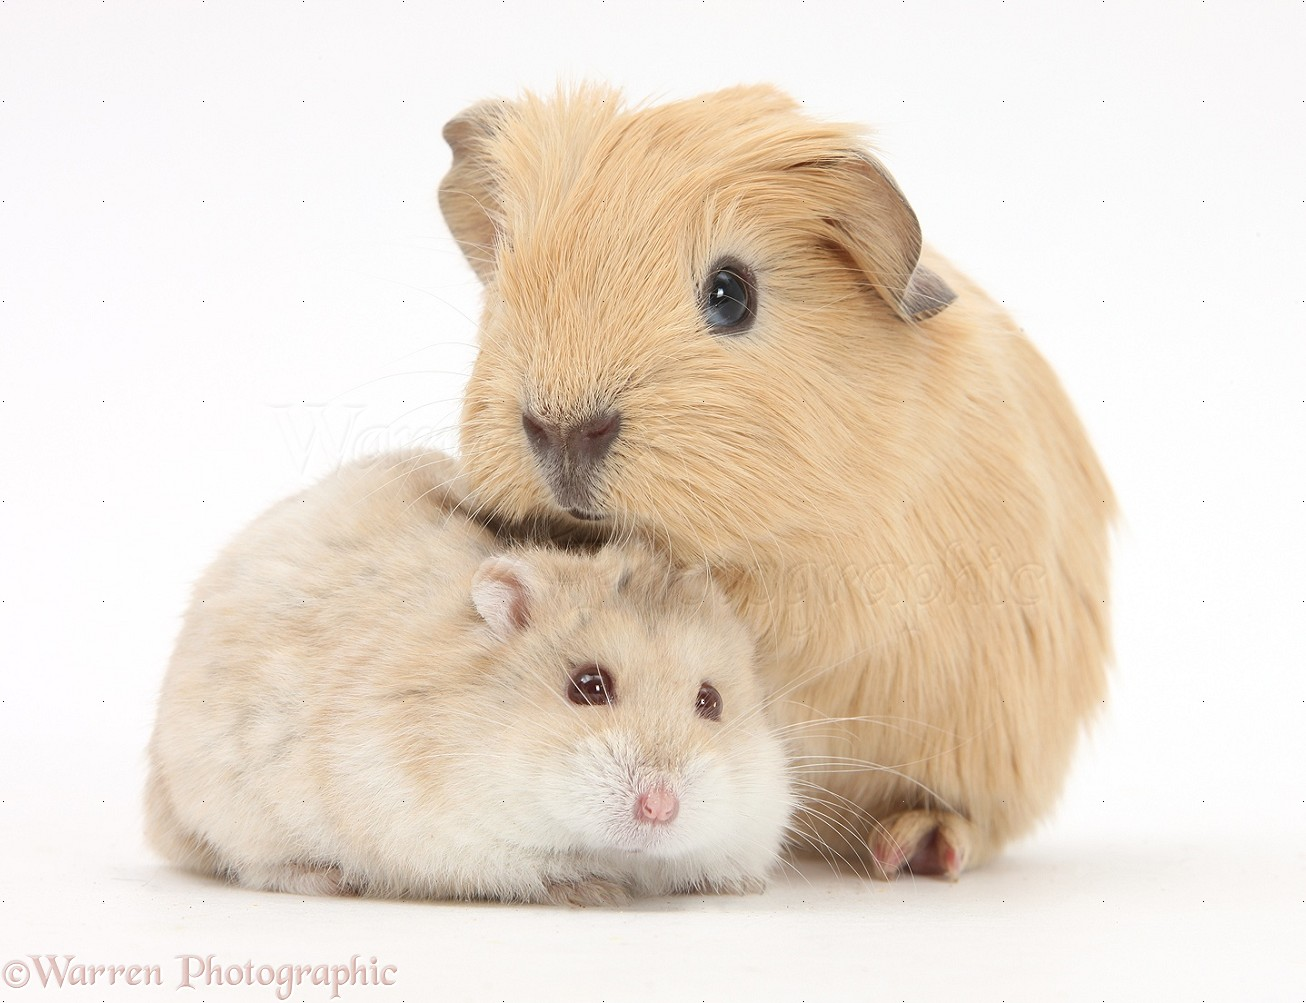 Uncategorized Hamsters And Guinea Pigs baby guinea pig and russian hamster photo wp25390 puppy red pig